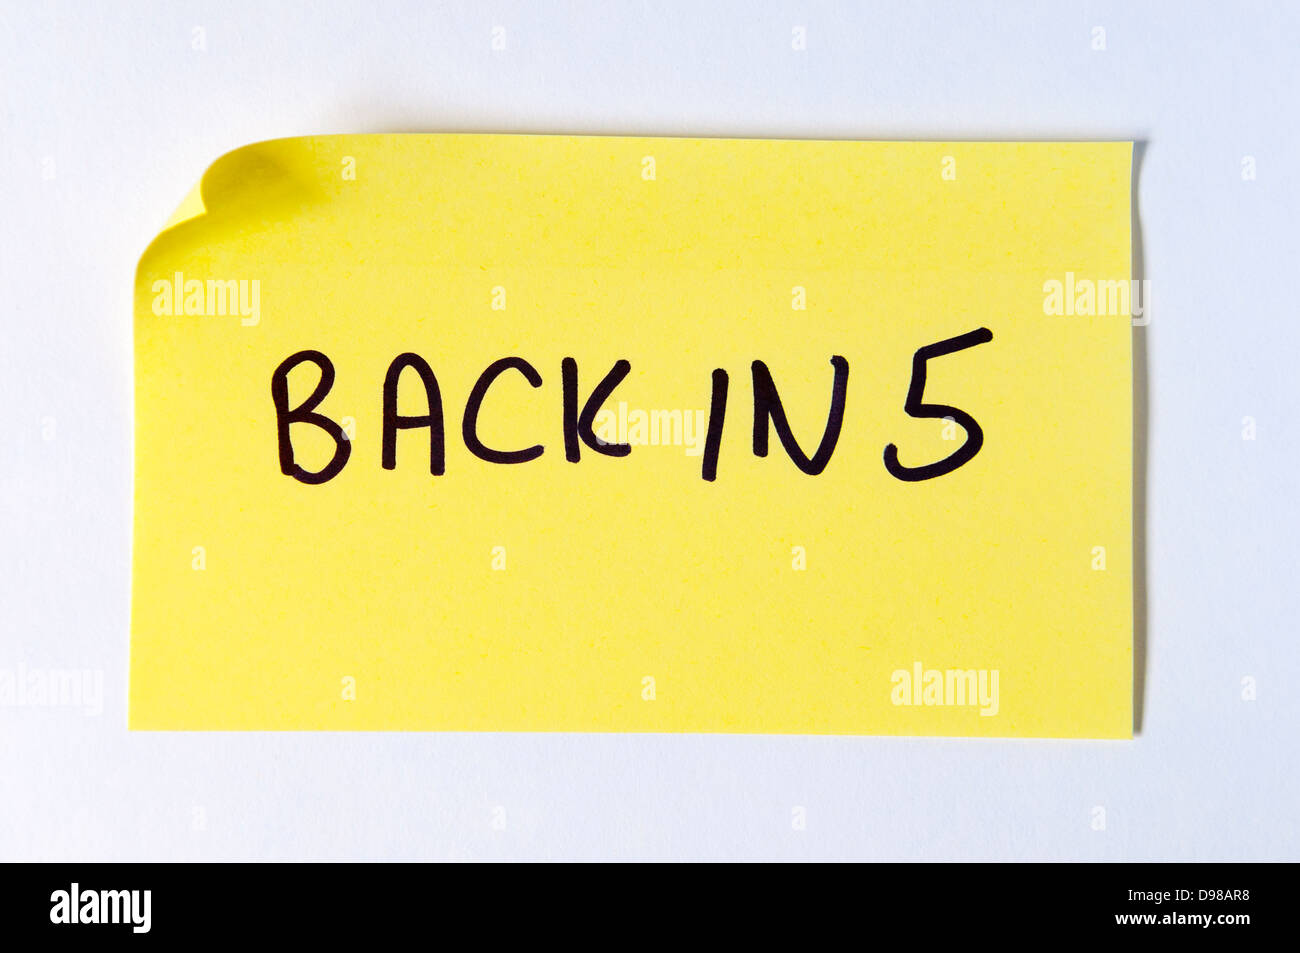 Back in 5 written on a yellow post it note - Stock Image